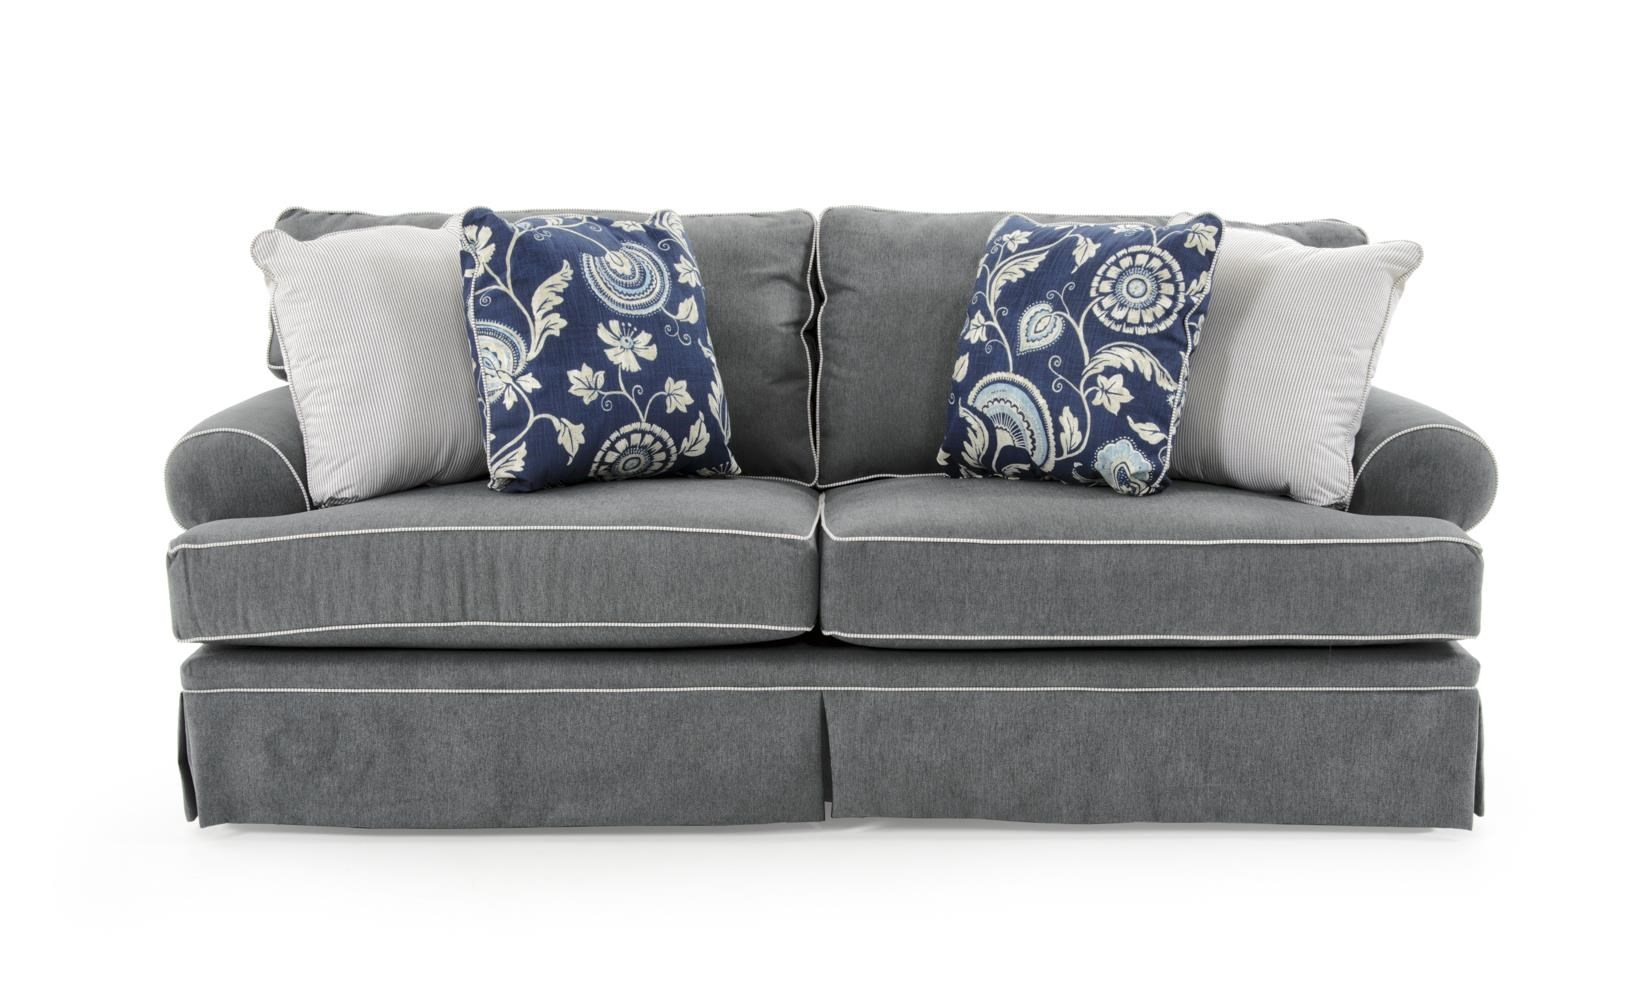 Broyhill Furniture Emily Casual Style Sofa - Item Number: 6262-3 4022-44